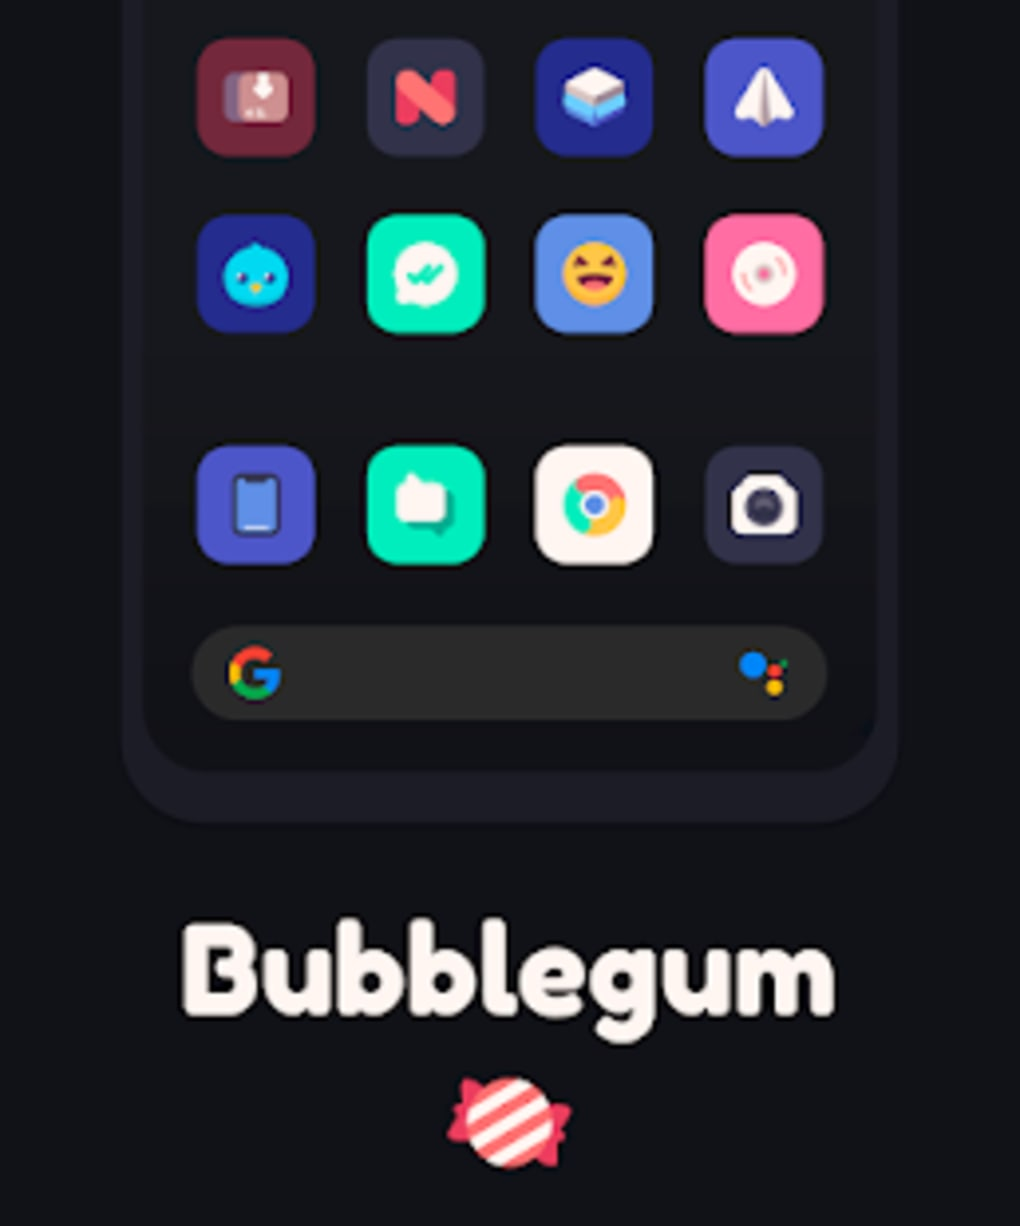 Bubblegum Icon Pack for Android - Download